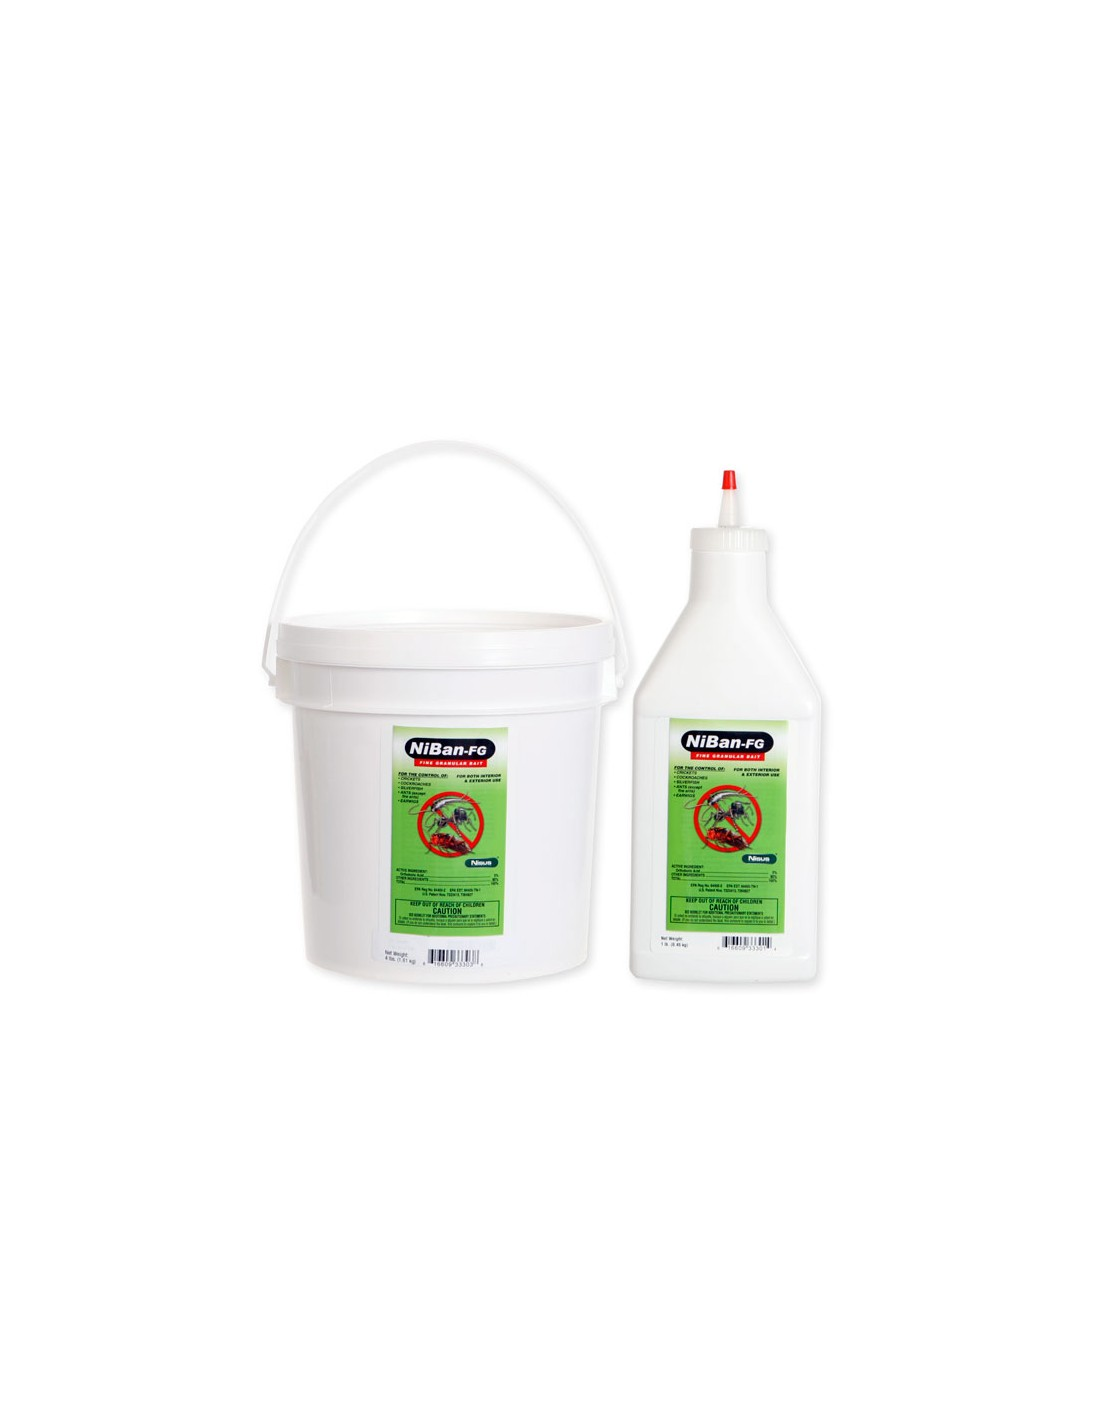 How long does it remain effective if kept in the jug for years?